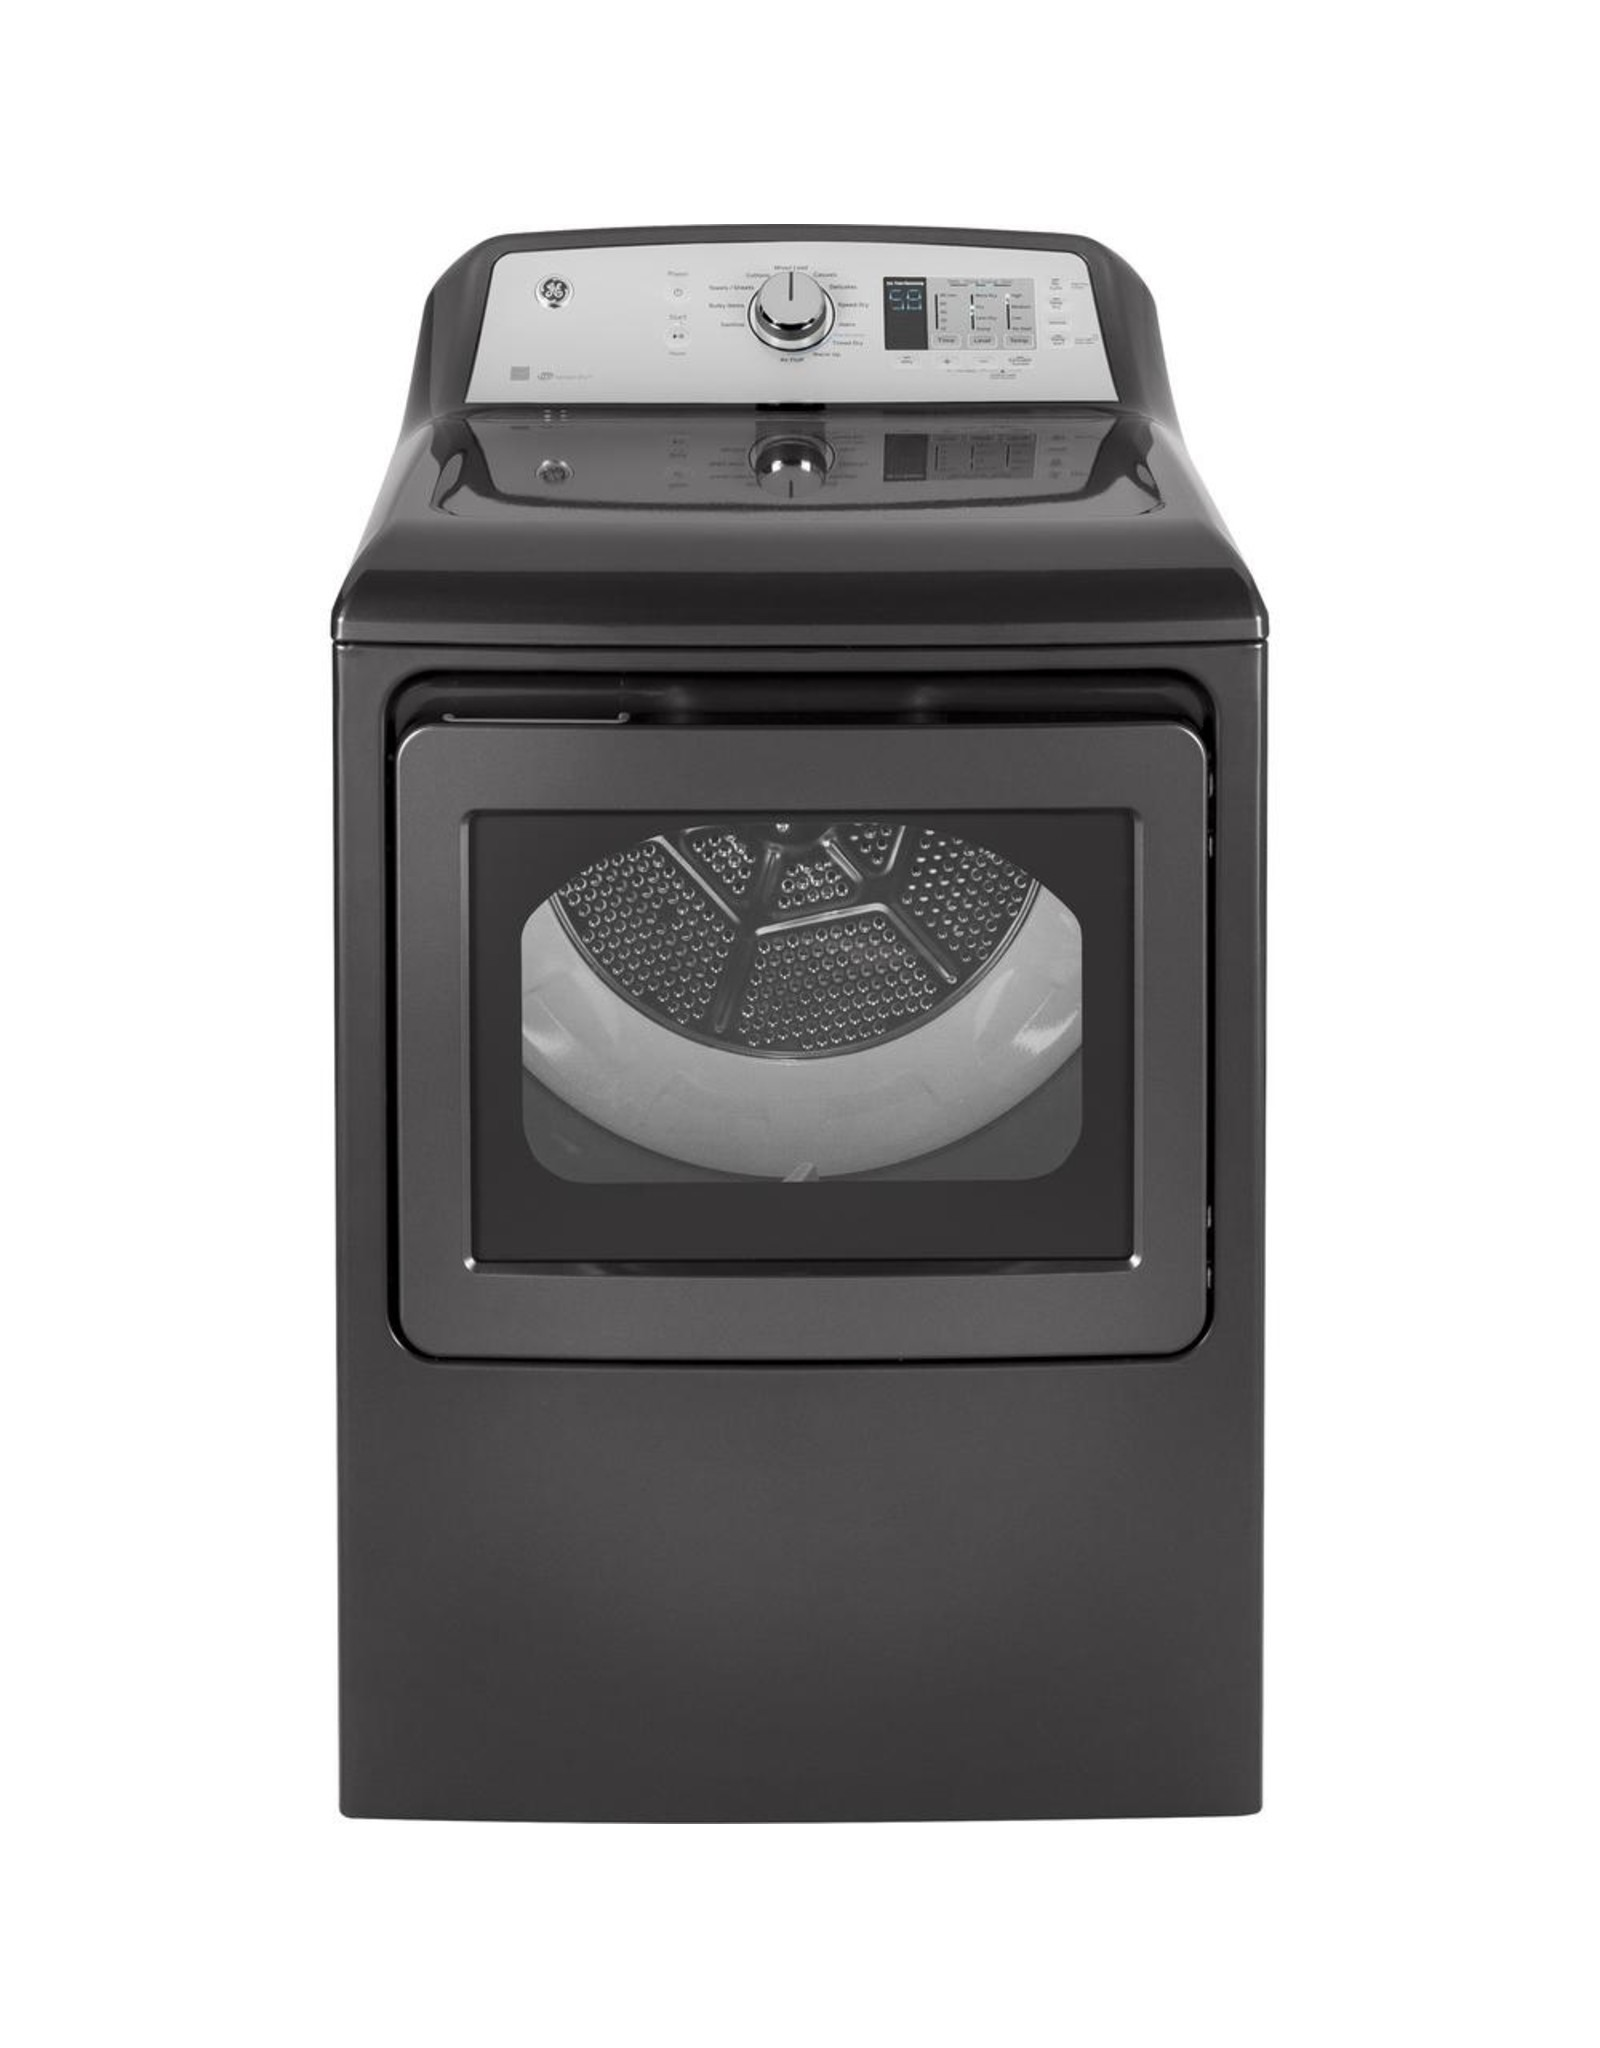 GE GTD72EBPNDG GE 7.4 cu. ft. 240-Volt Diamond Gray Electric Vented Dryer with Sanitize Cycle, ENERGY STAR